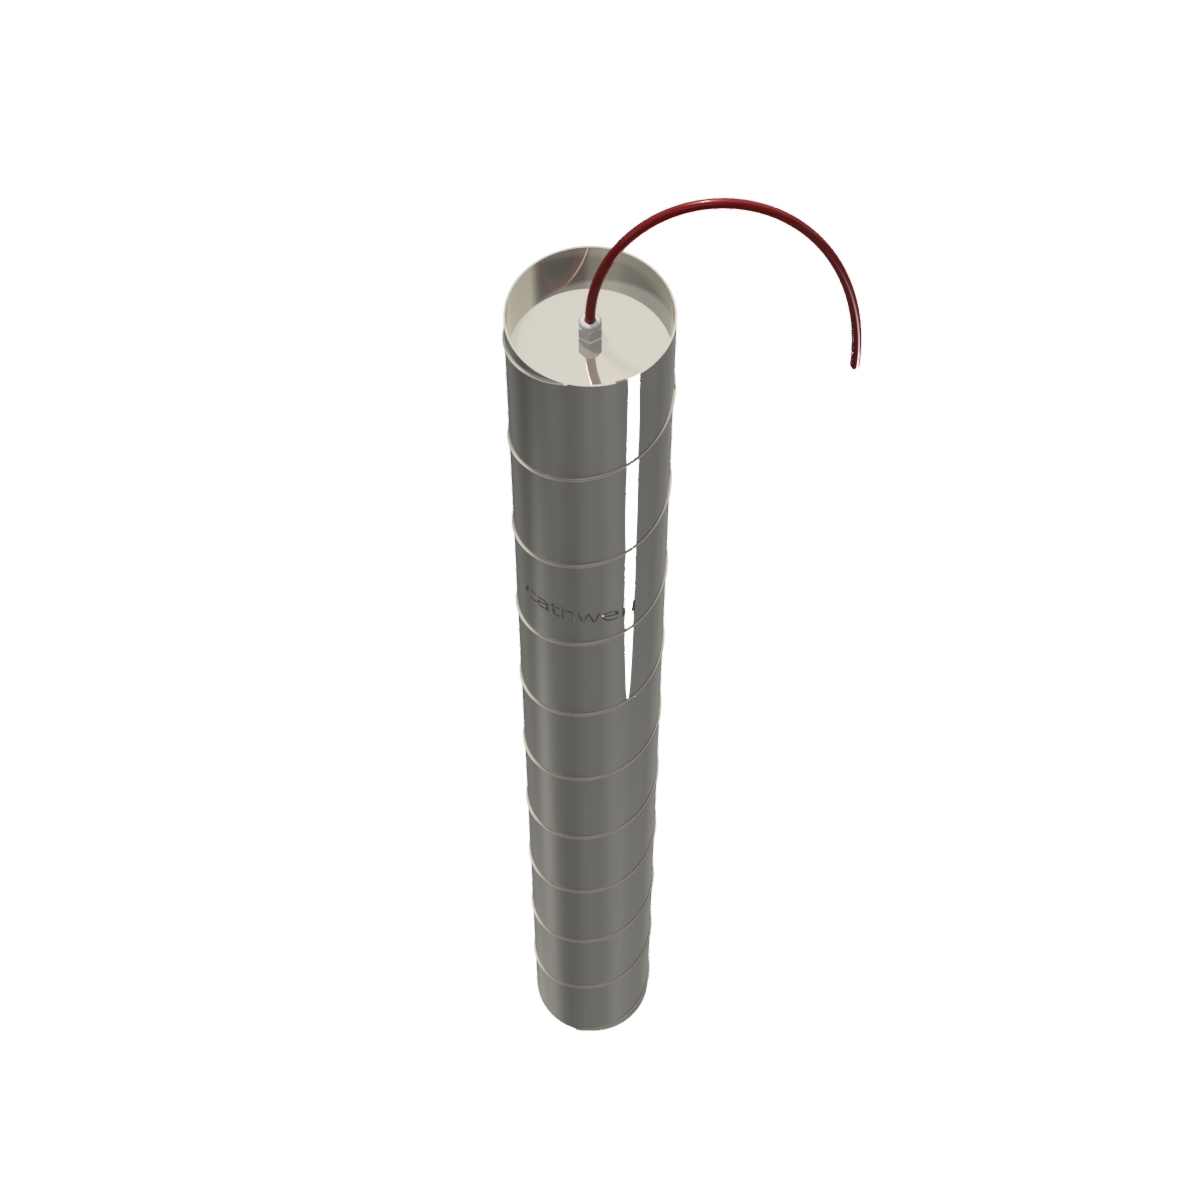 http://Product%20image%20of%20ICCP%20Anodes%20Canister-anode%20/%20Produktbilde%20av%20ICCP%20Anoder%20Canister-anode